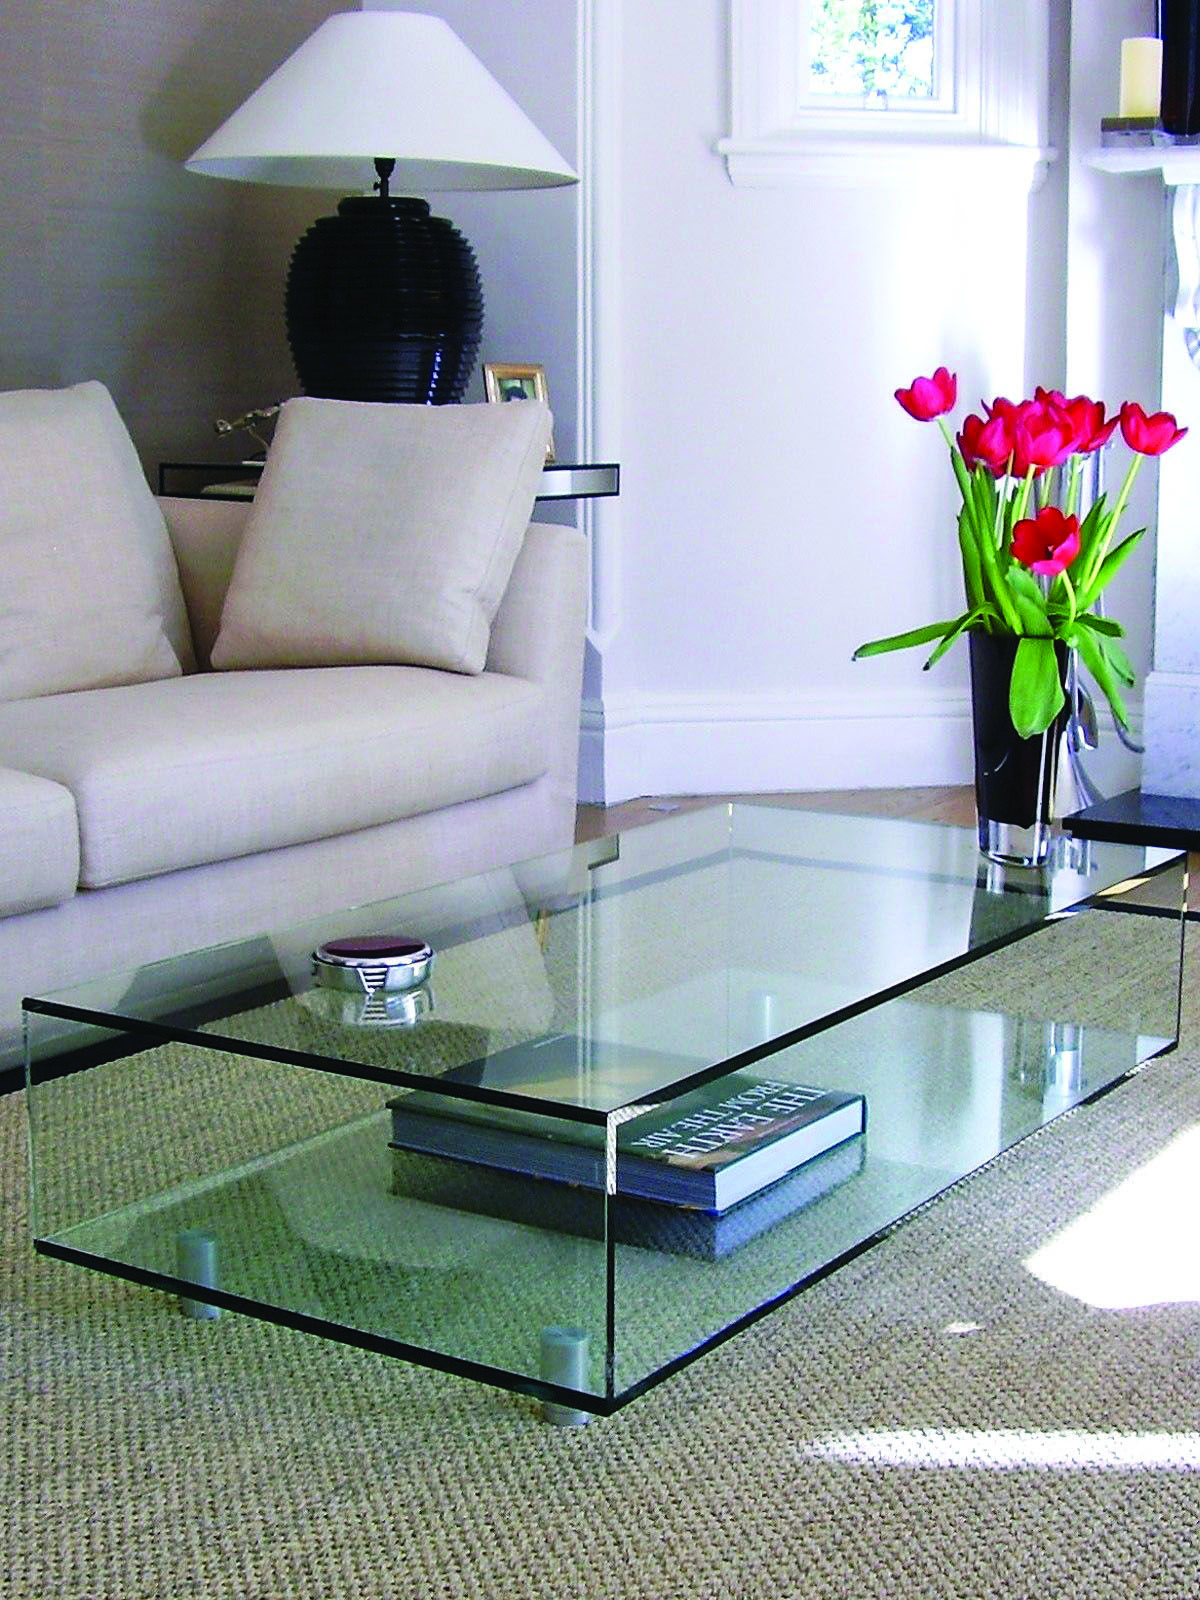 Suitable Unique Coffee Tables Pinterest Only On This Page Glass Table Living Room Living Room Table Coffee Table Living Room Modern [ 1600 x 1200 Pixel ]